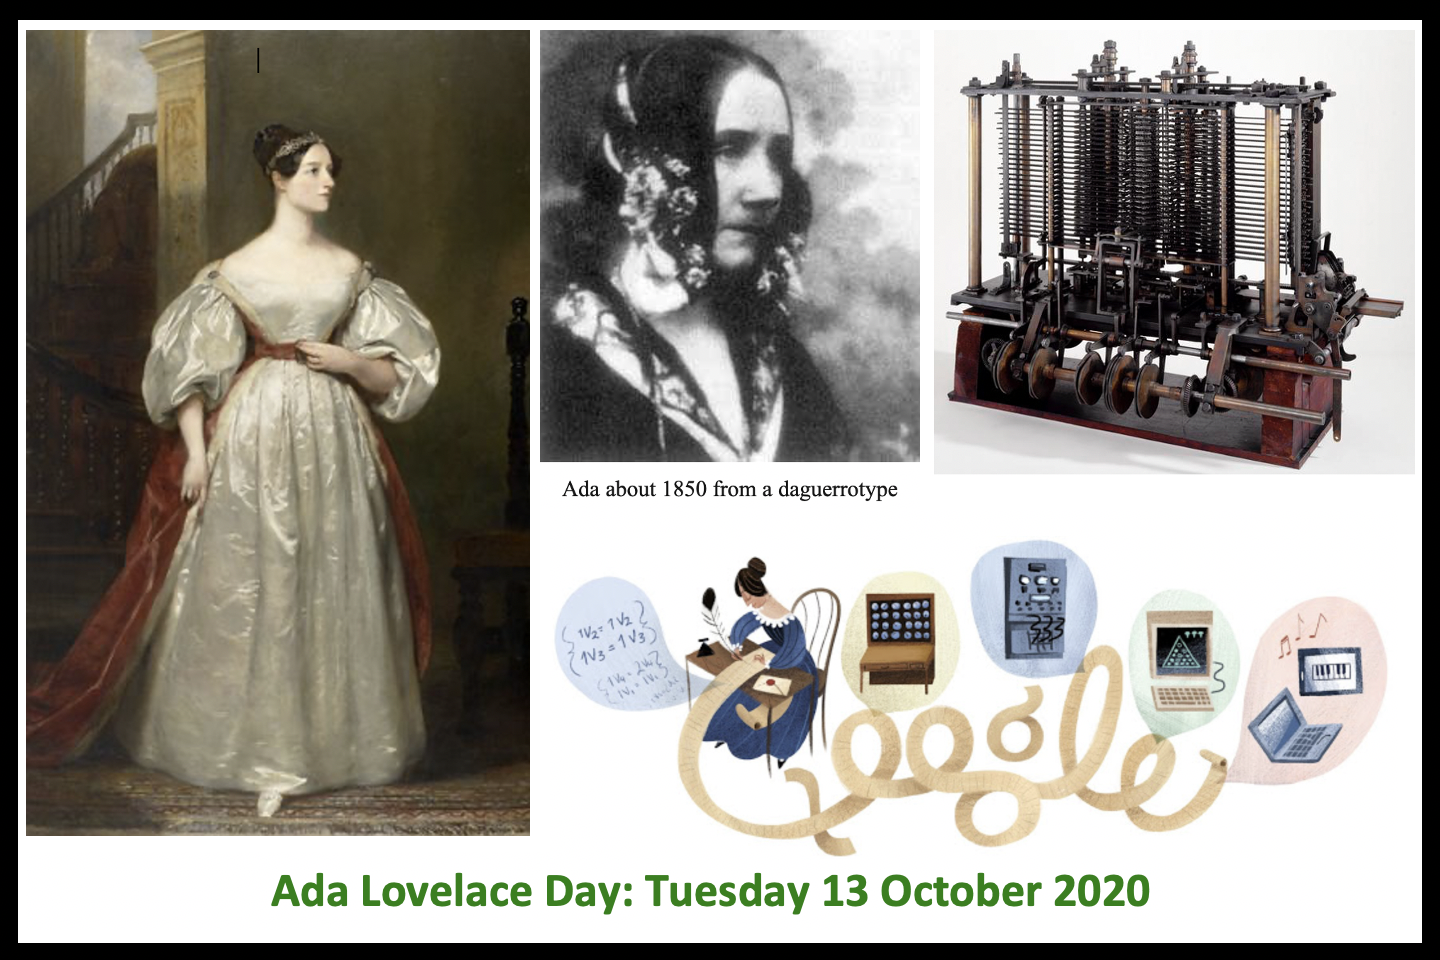 Ada Lovelace Day 2020